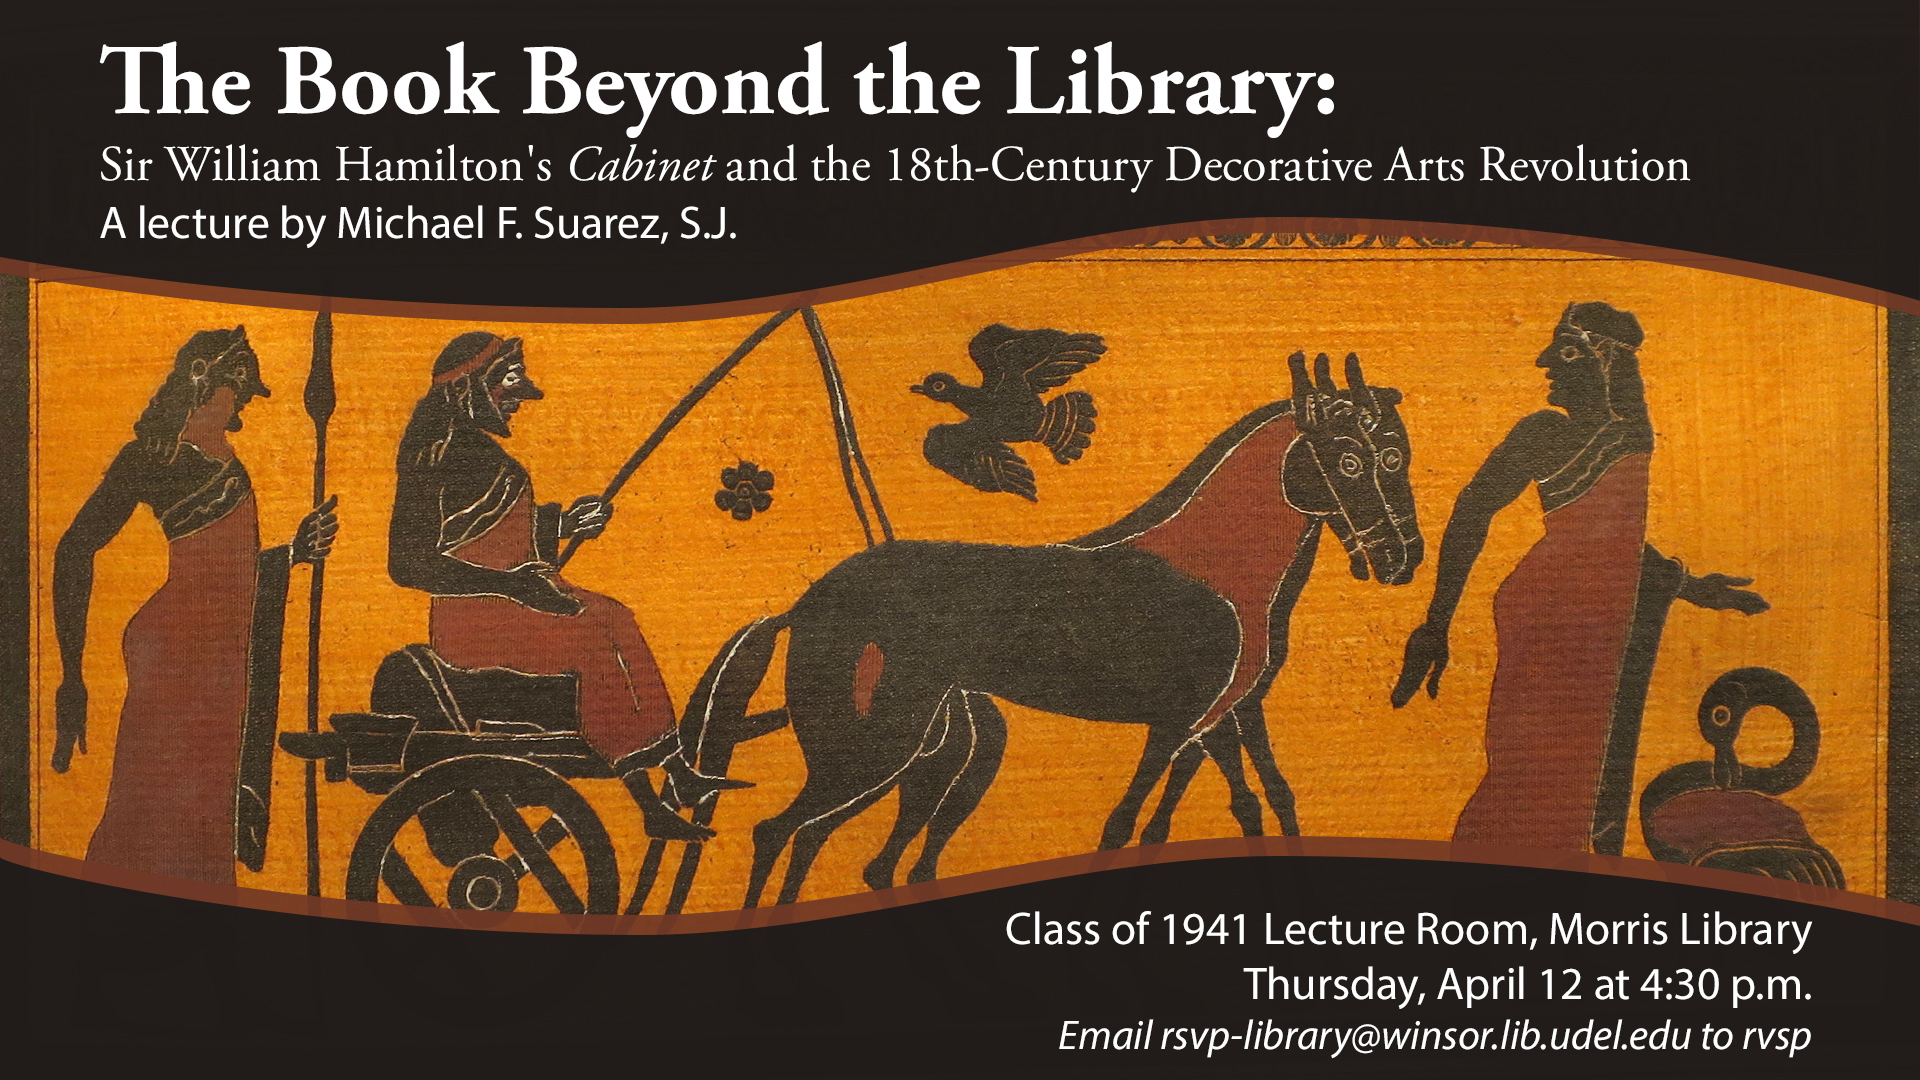 The Book Beyond the Library: Sir William Hamilton's Cabinet and the 18th-Century Decorative Arts Revolution. A lecture by Michael F. Suarez, S.J. Class of 1941 Lecture Room, Morris Library. April 12 at 4:30 p.m., Email rsvp-library@winsor.lib.udel.edu to rsvp